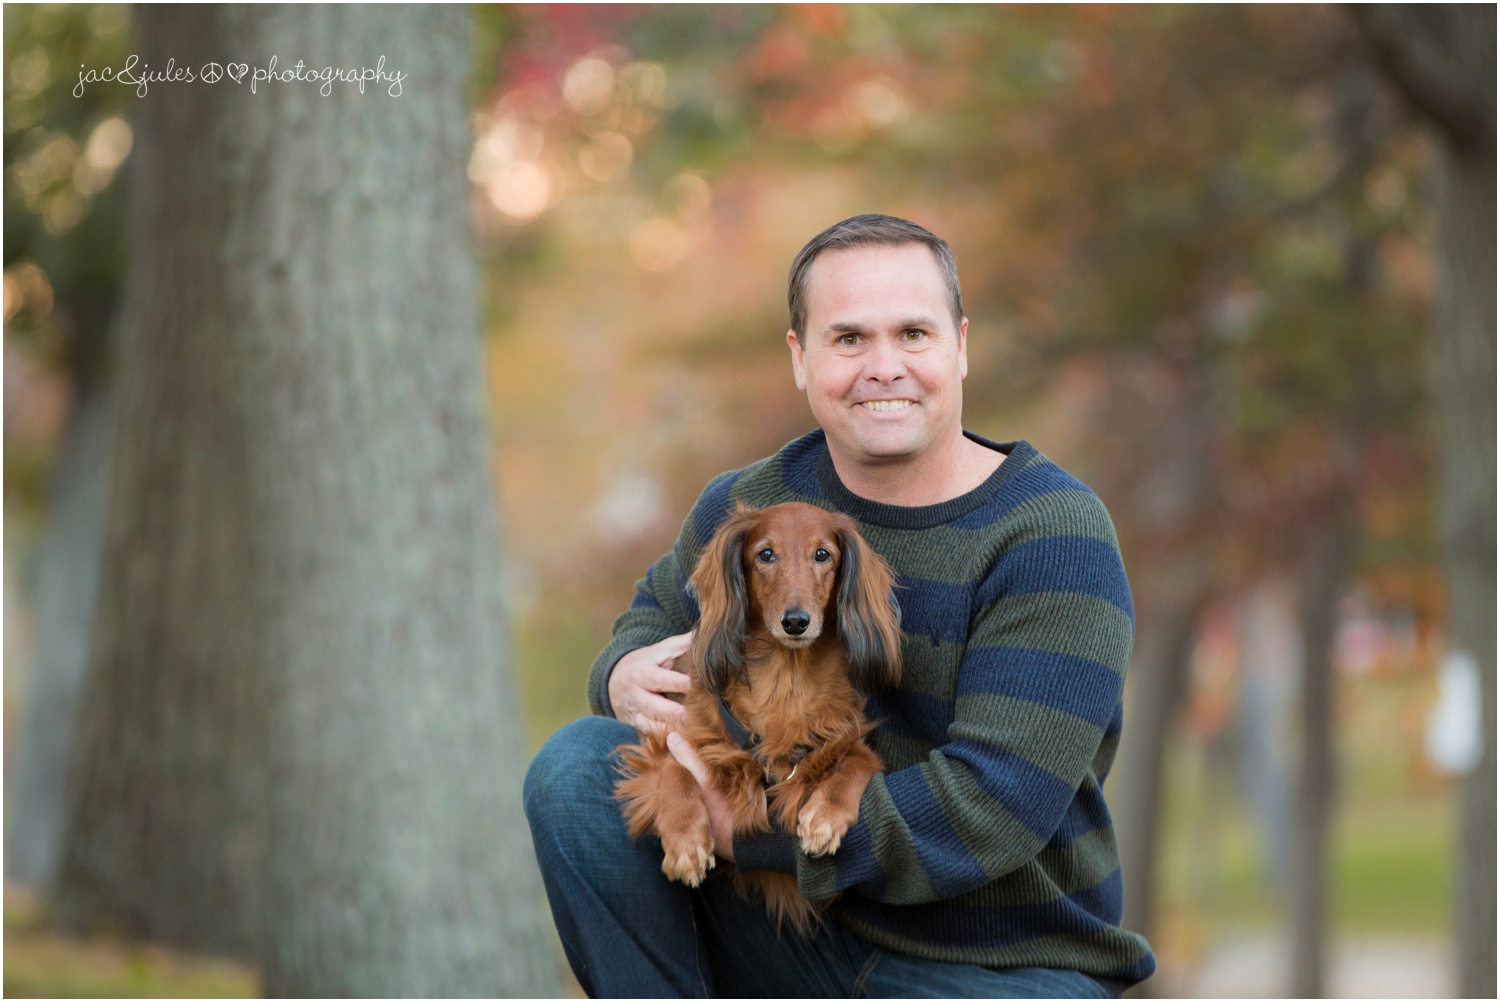 Handsome man and his dog